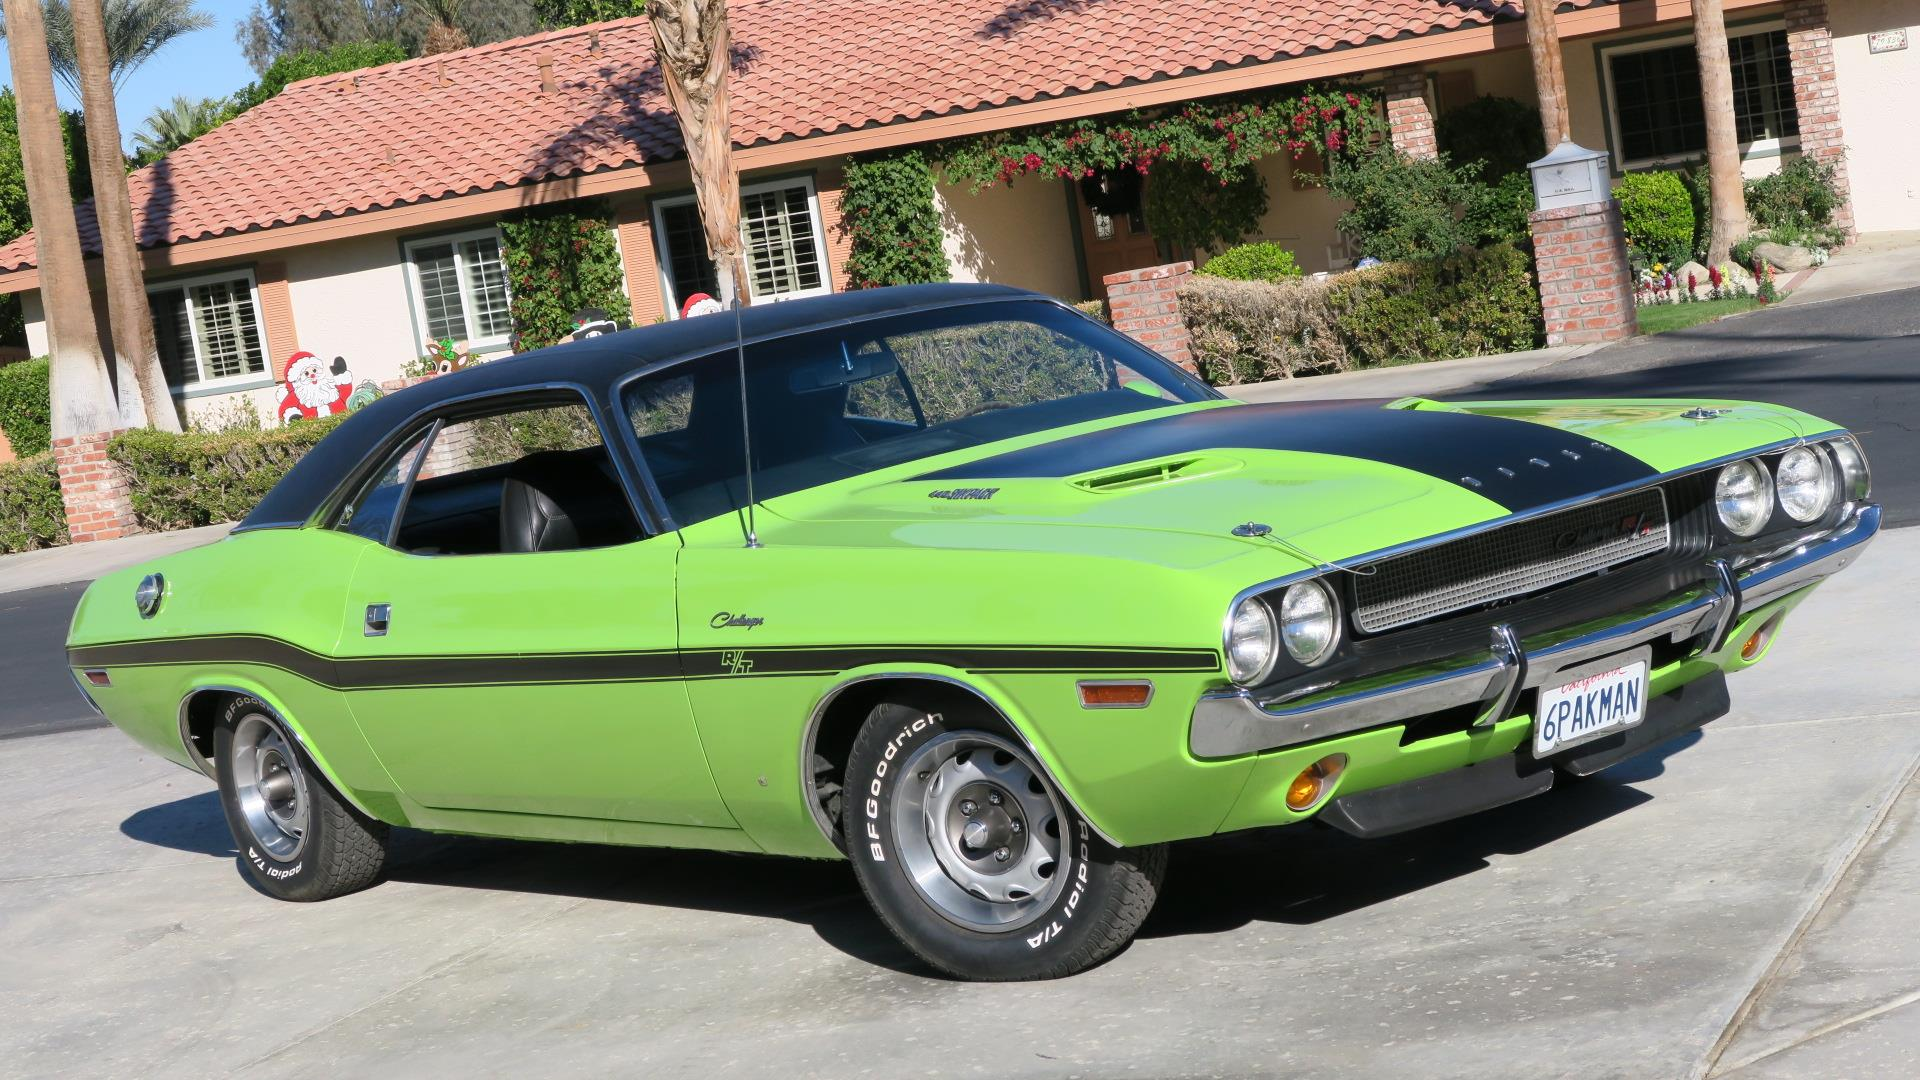 1970 dodge challenger r t 440 4 speed u code california car sublime green rare. Black Bedroom Furniture Sets. Home Design Ideas